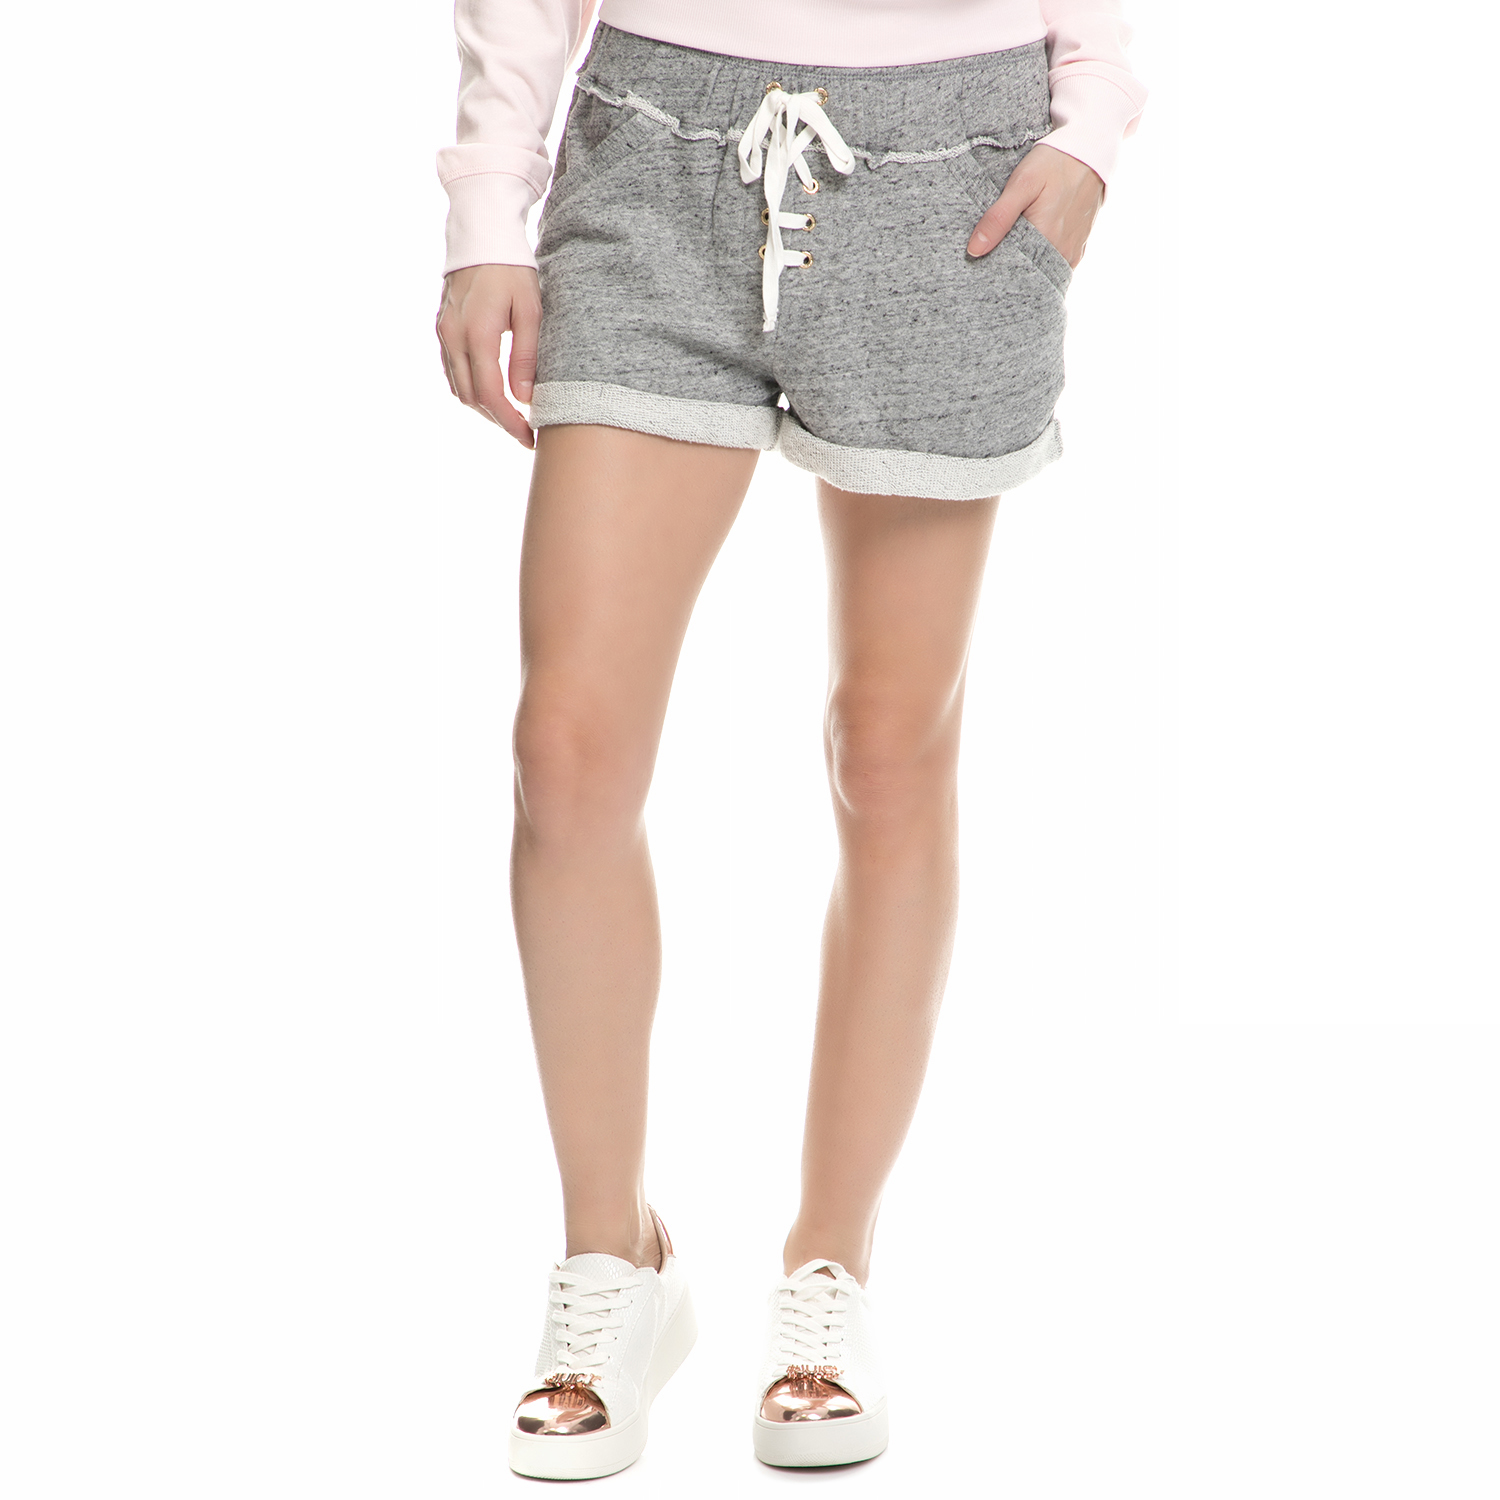 JUICY COUTURE – Γυναικείο σορτς Juicy Couture FRENCH TERRY LACE UP γκρι